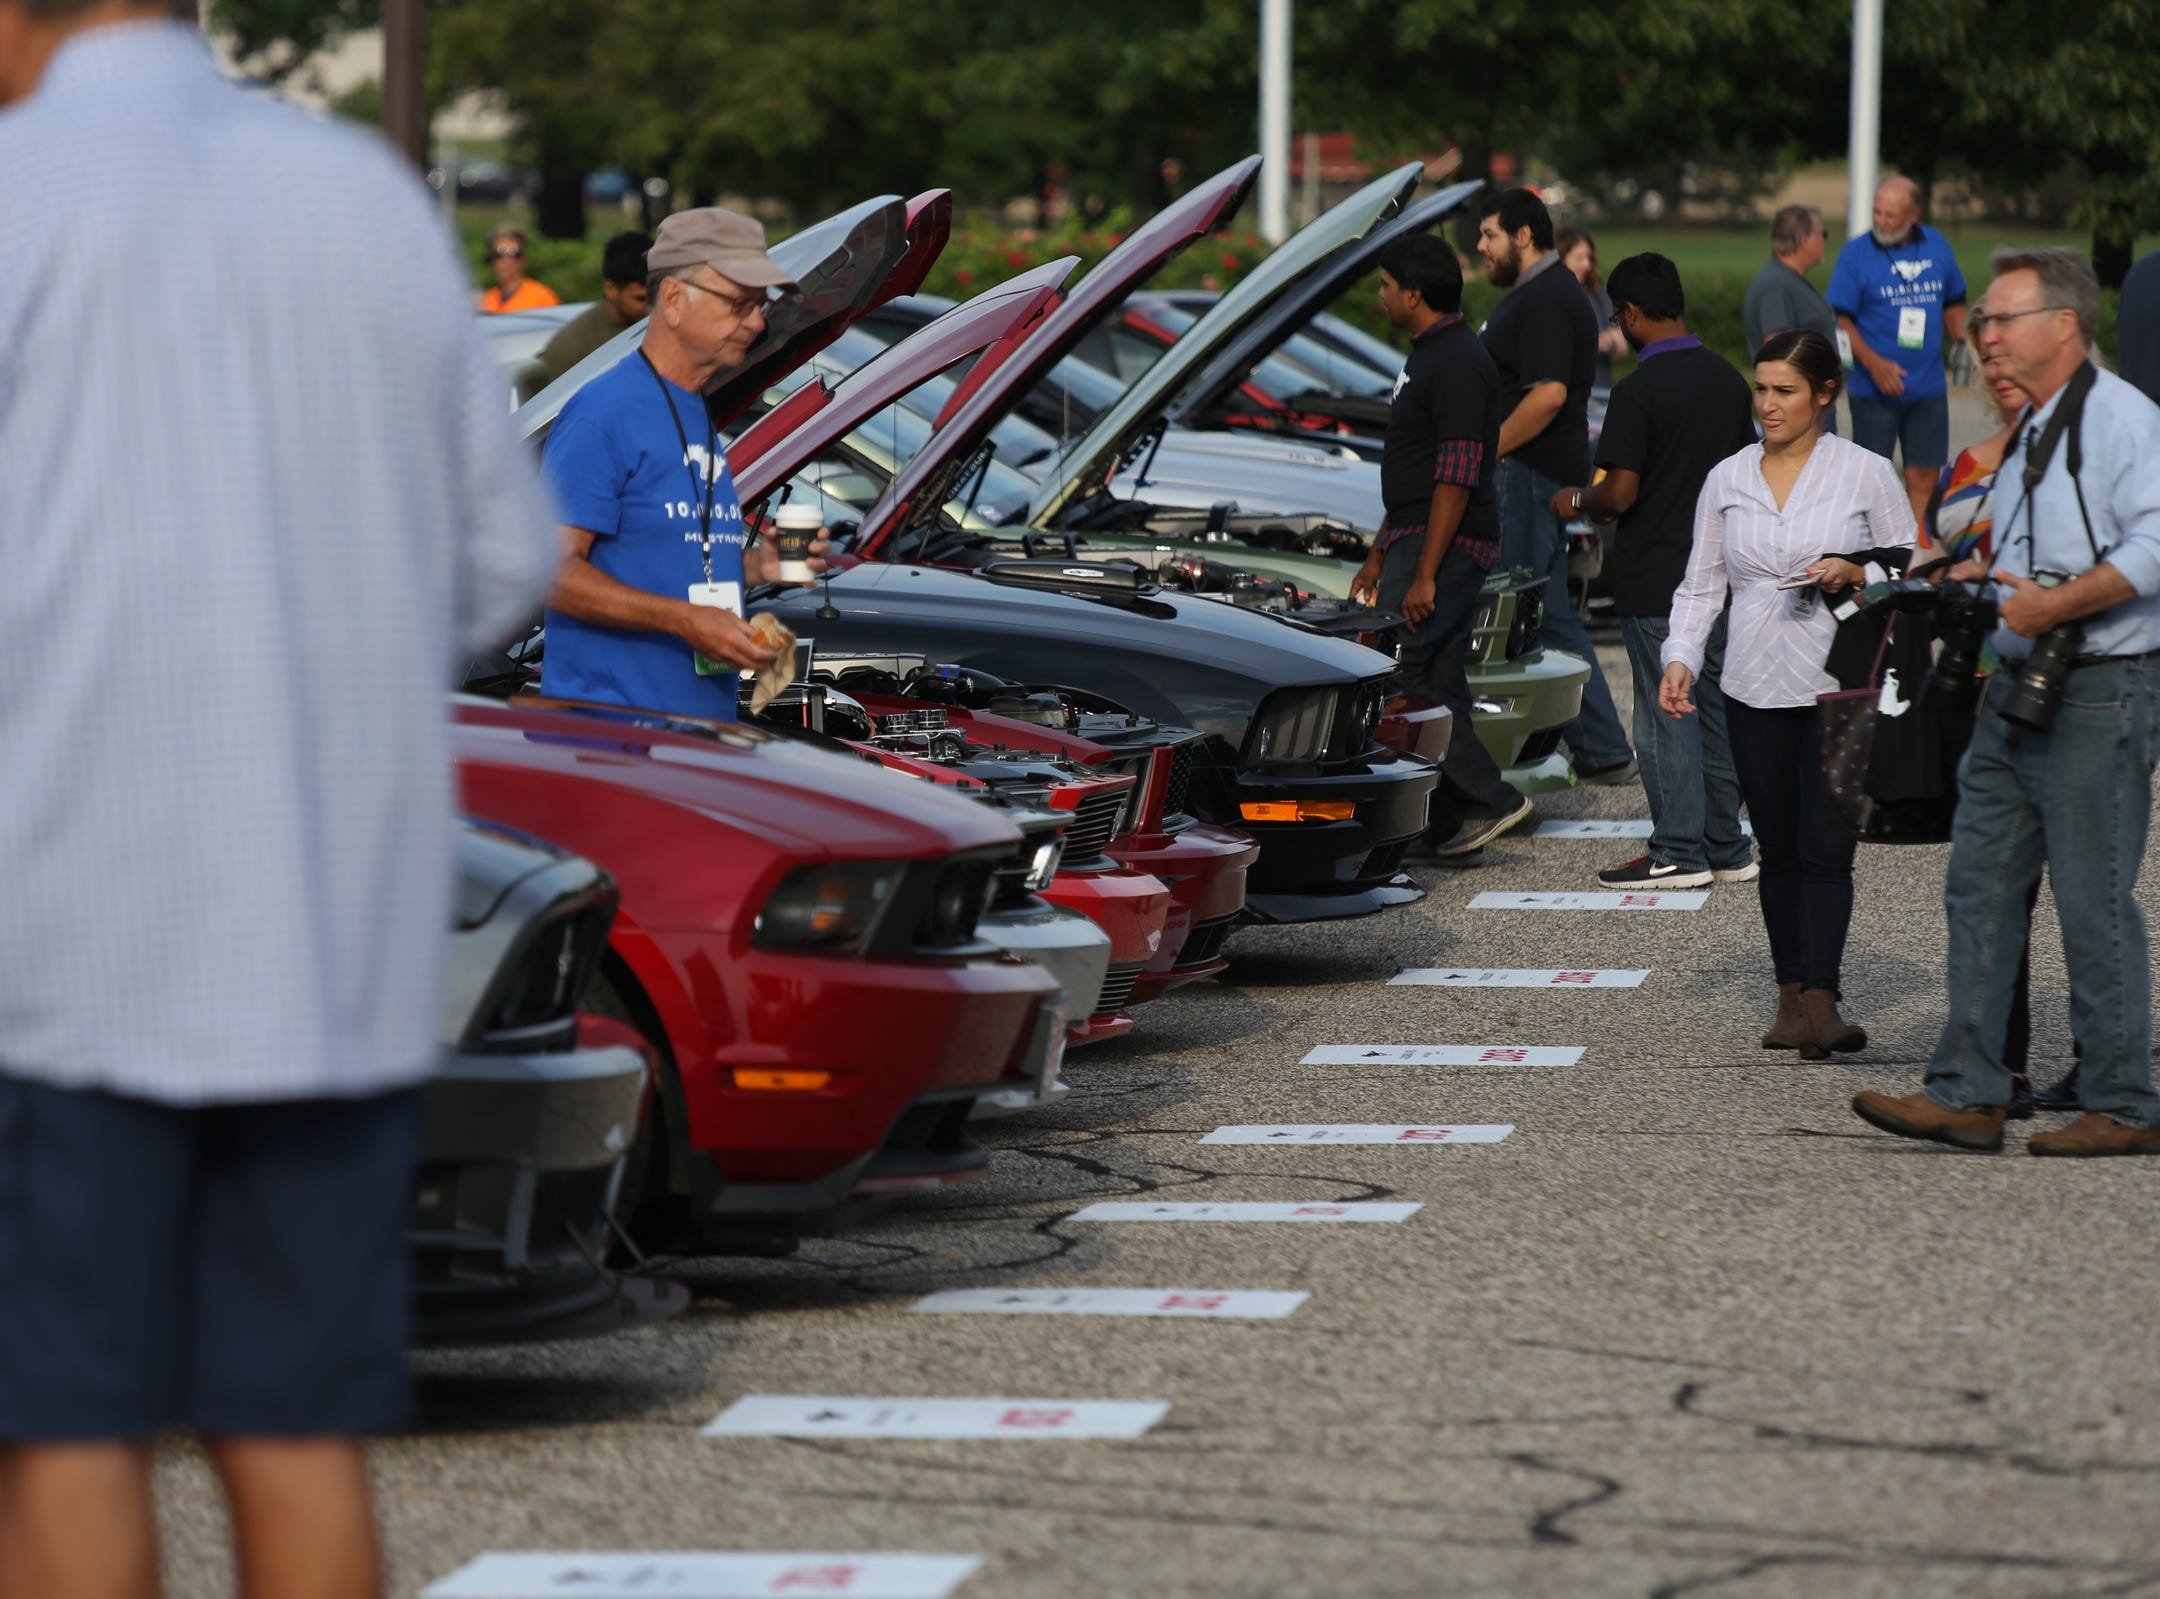 Mustangs are lined up during a Ford event celebrating the 10,000,000 Mustang built at the Ford Motor Company World Headquarters in Dearborn on Wed., Aug 8, 2018.